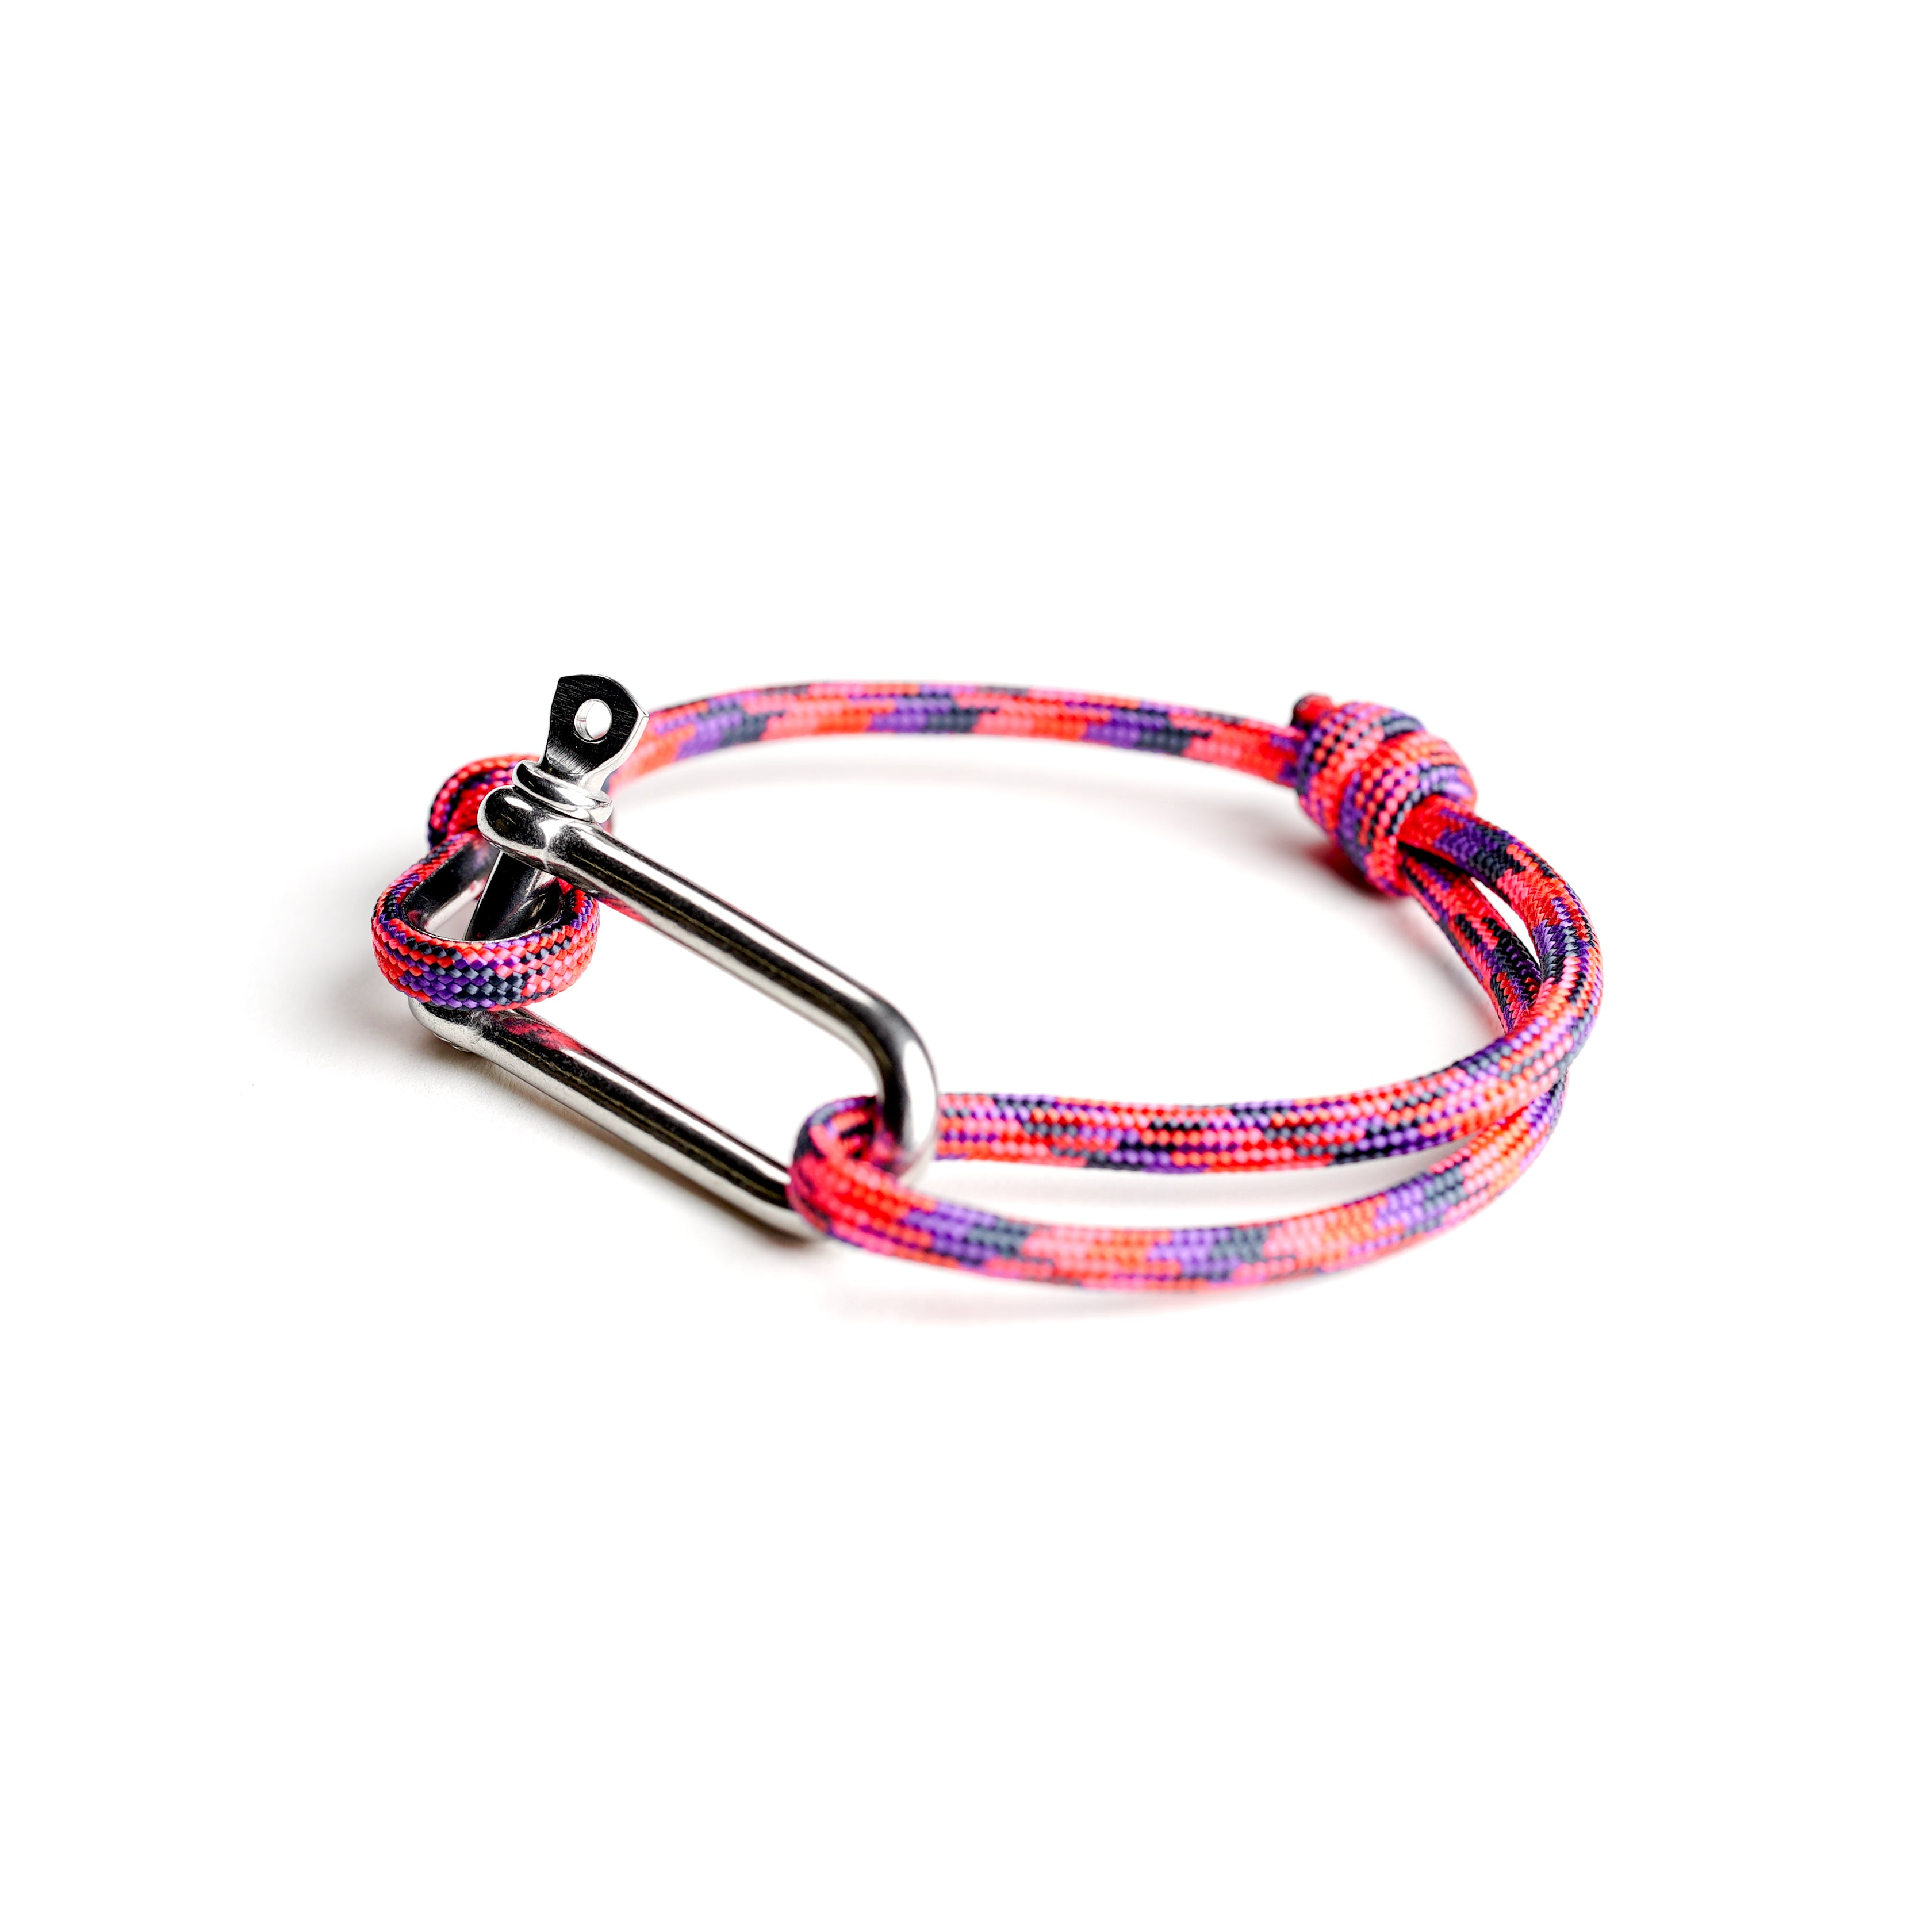 Paracord Nautical Bracelet with Stainless Steel Shackle - Pink & Purple